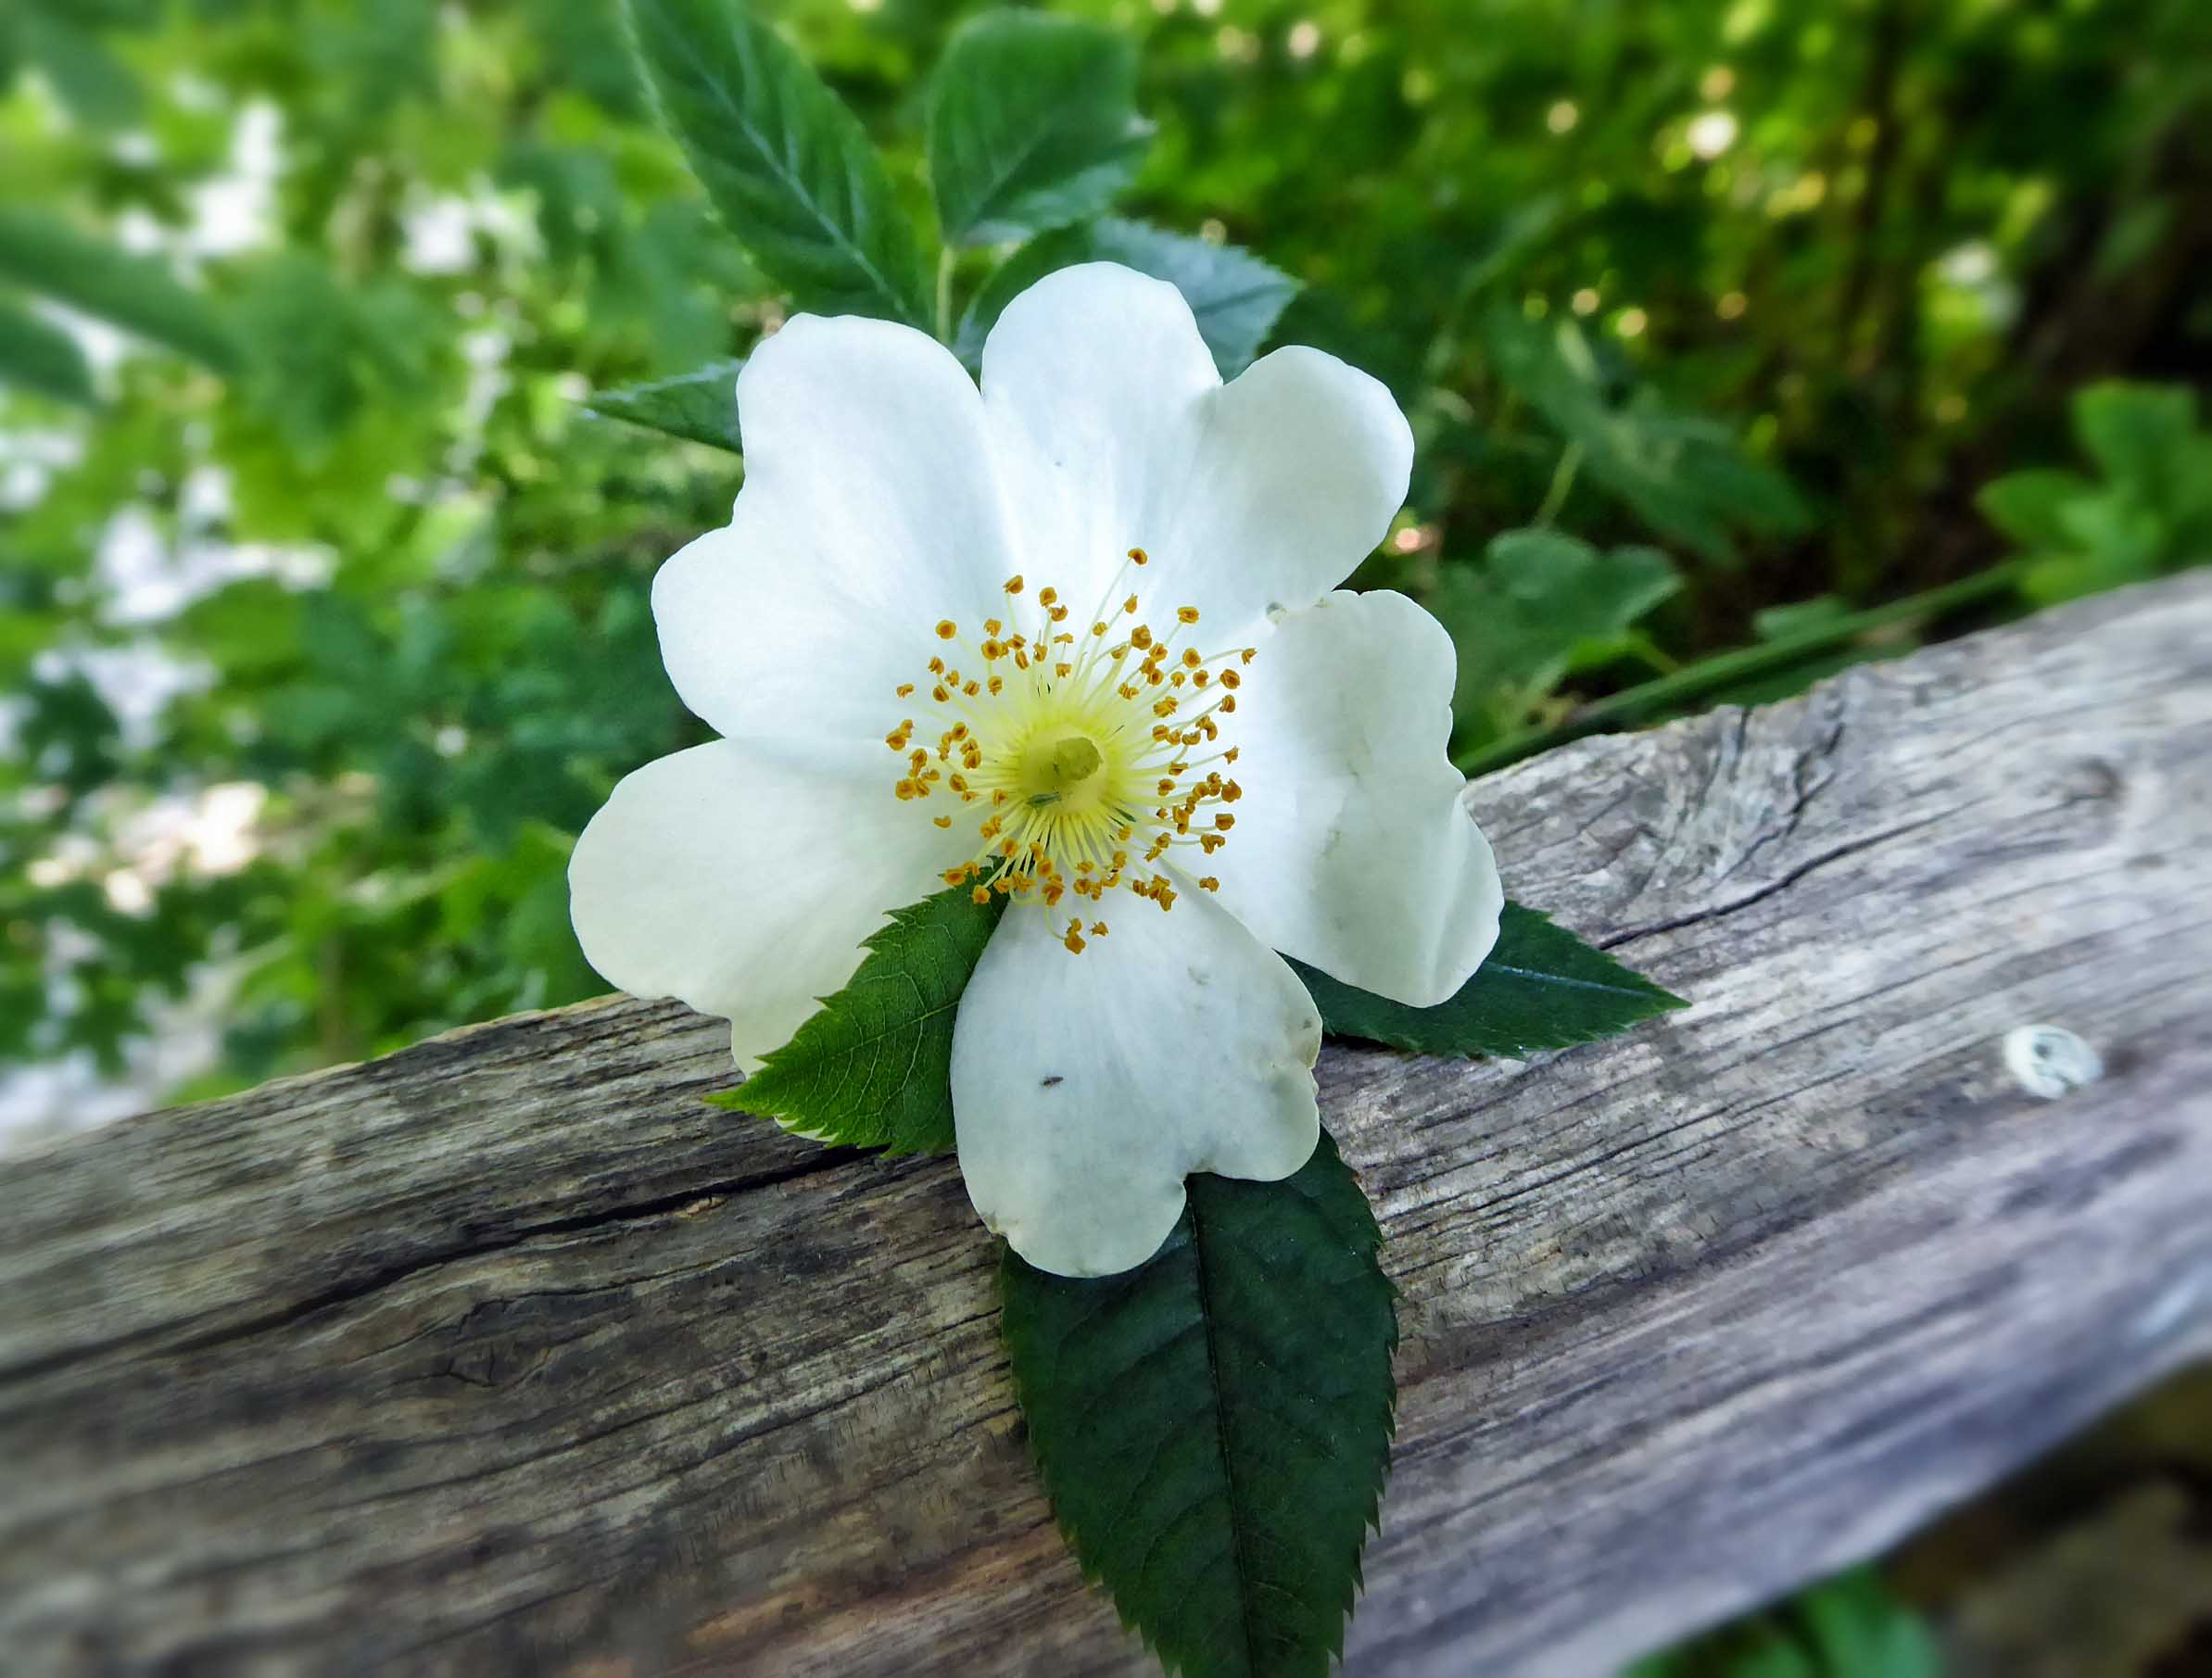 White rose by a log